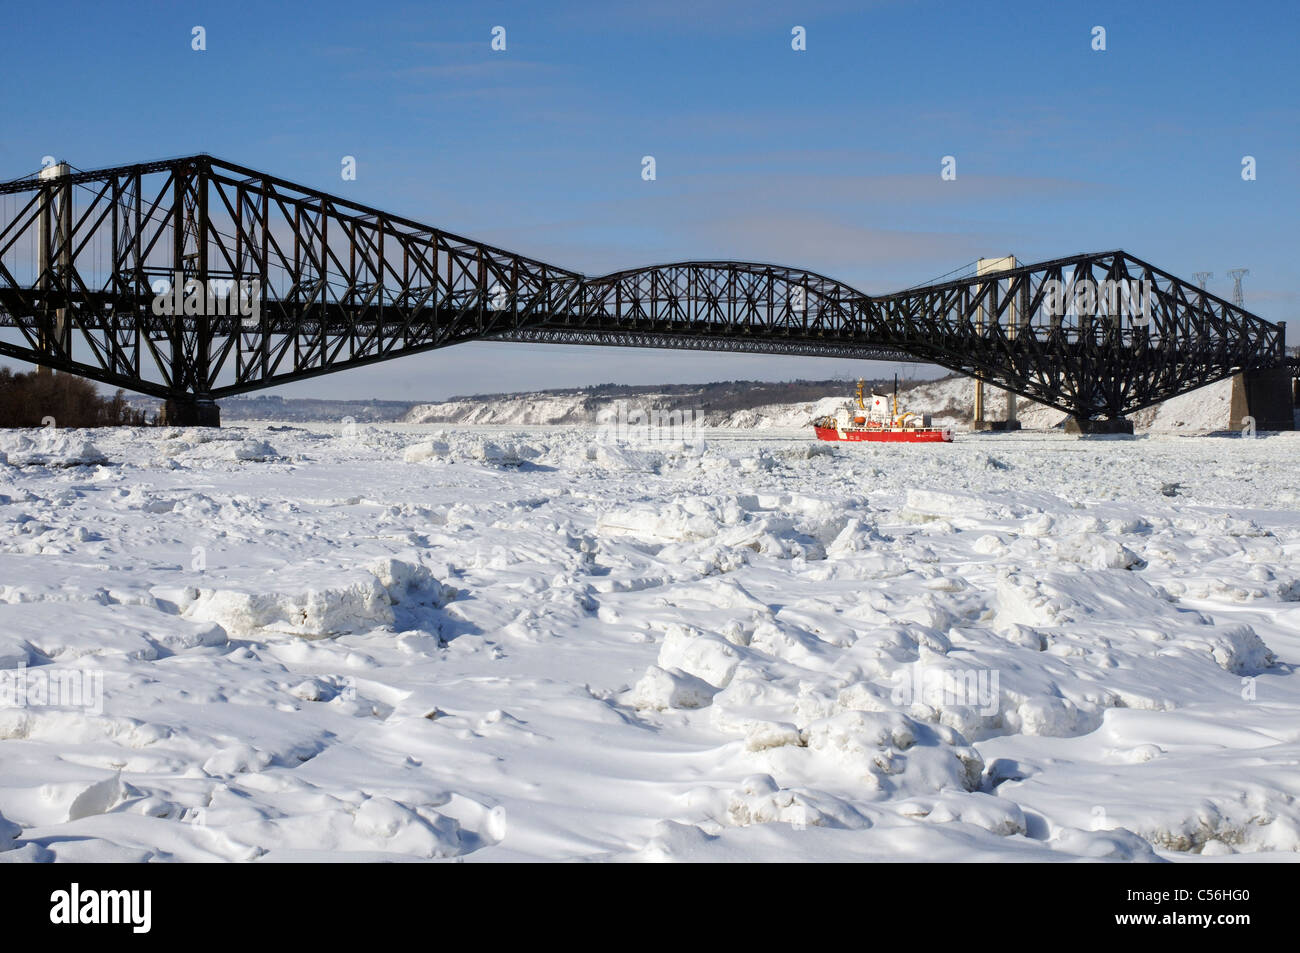 the-frozen-river-st-lawrence-and-the-pont-de-quebec-quebec-city-canada-C56HG0.jpg